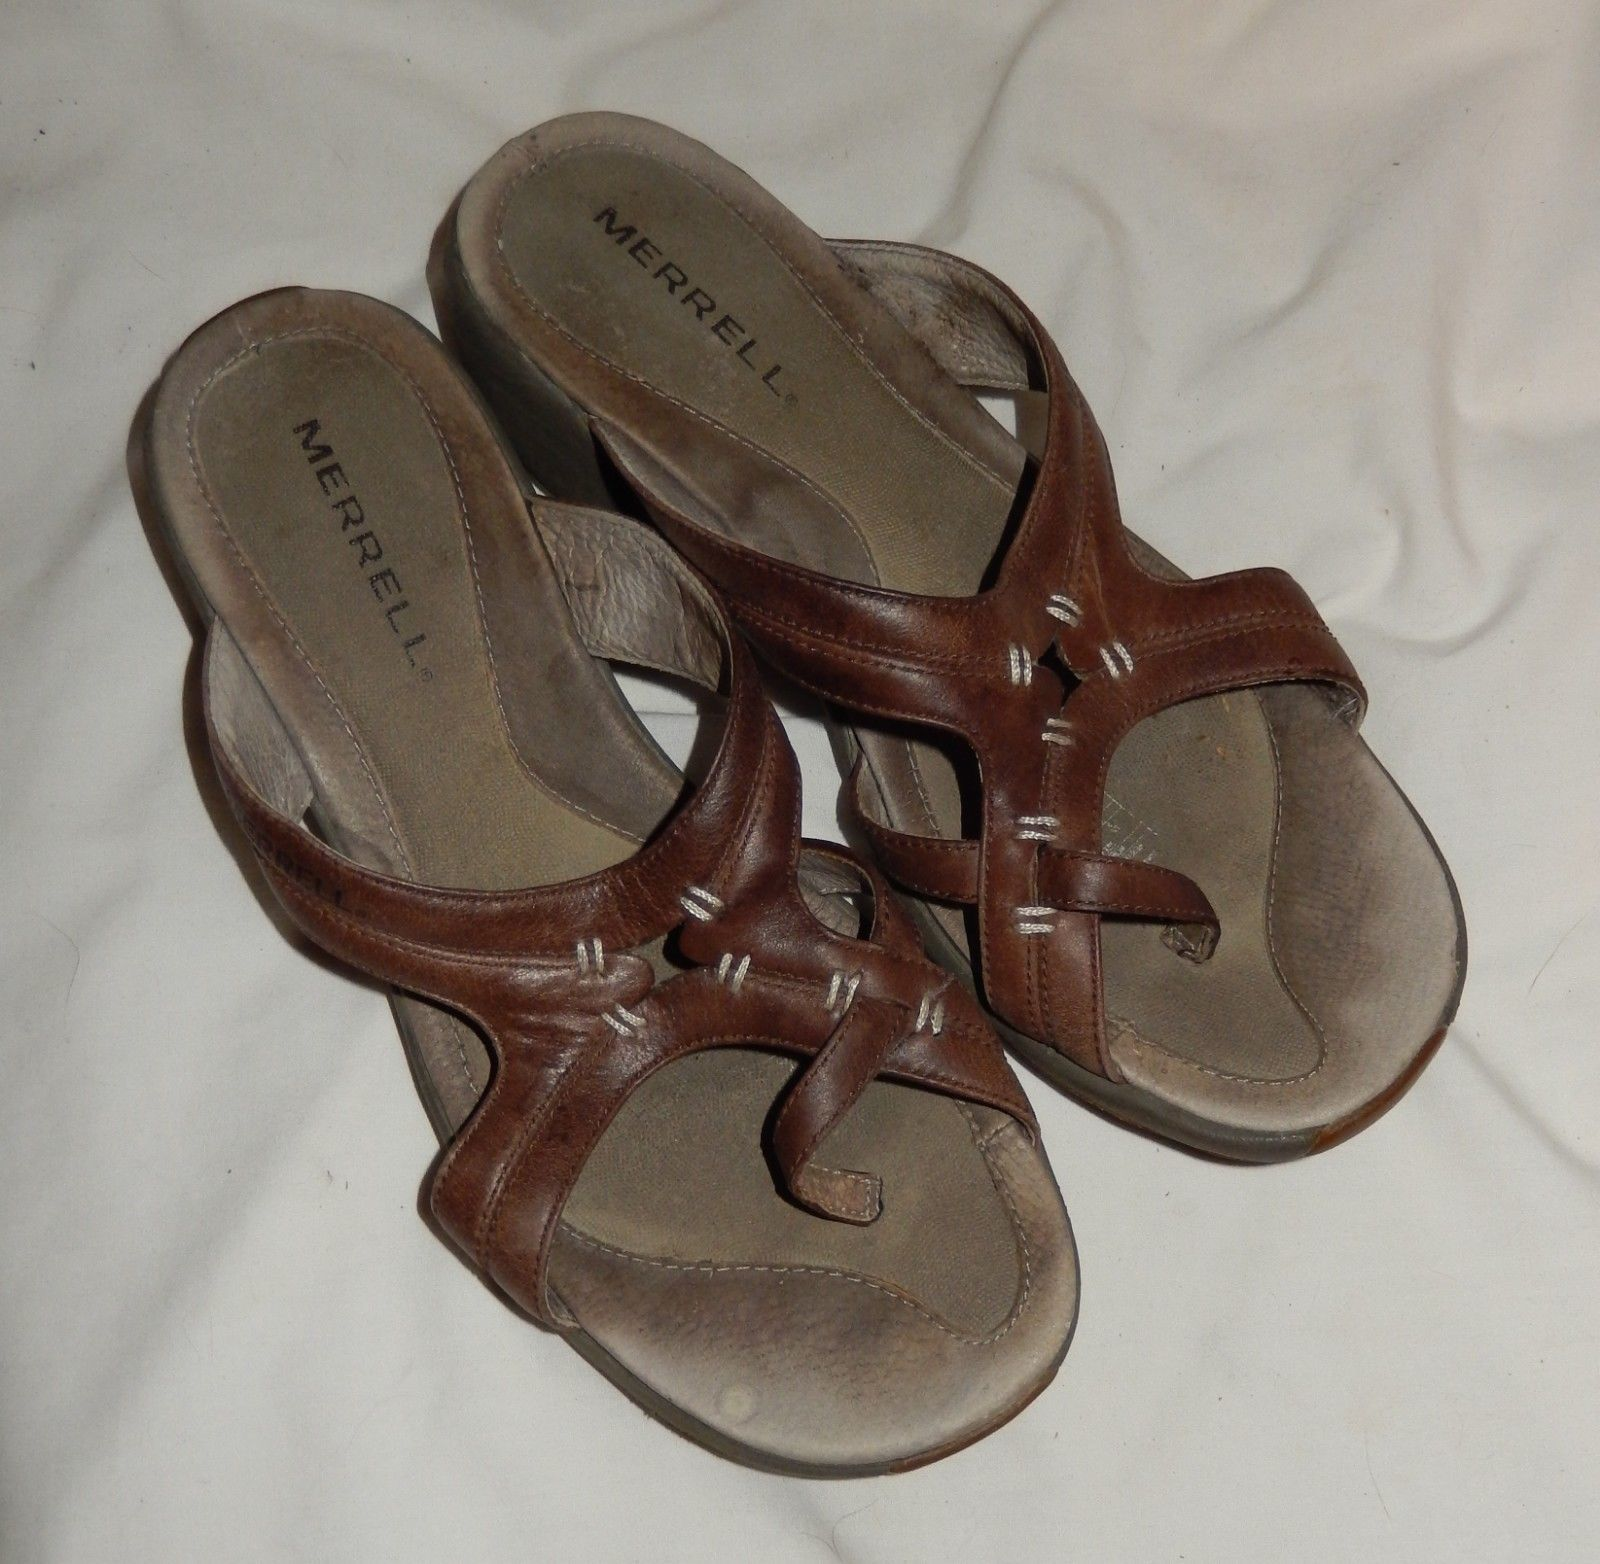 55de30908f8c Merrell Brown Leather Wedge Slip-On Sandals and 48 similar items. S l1600